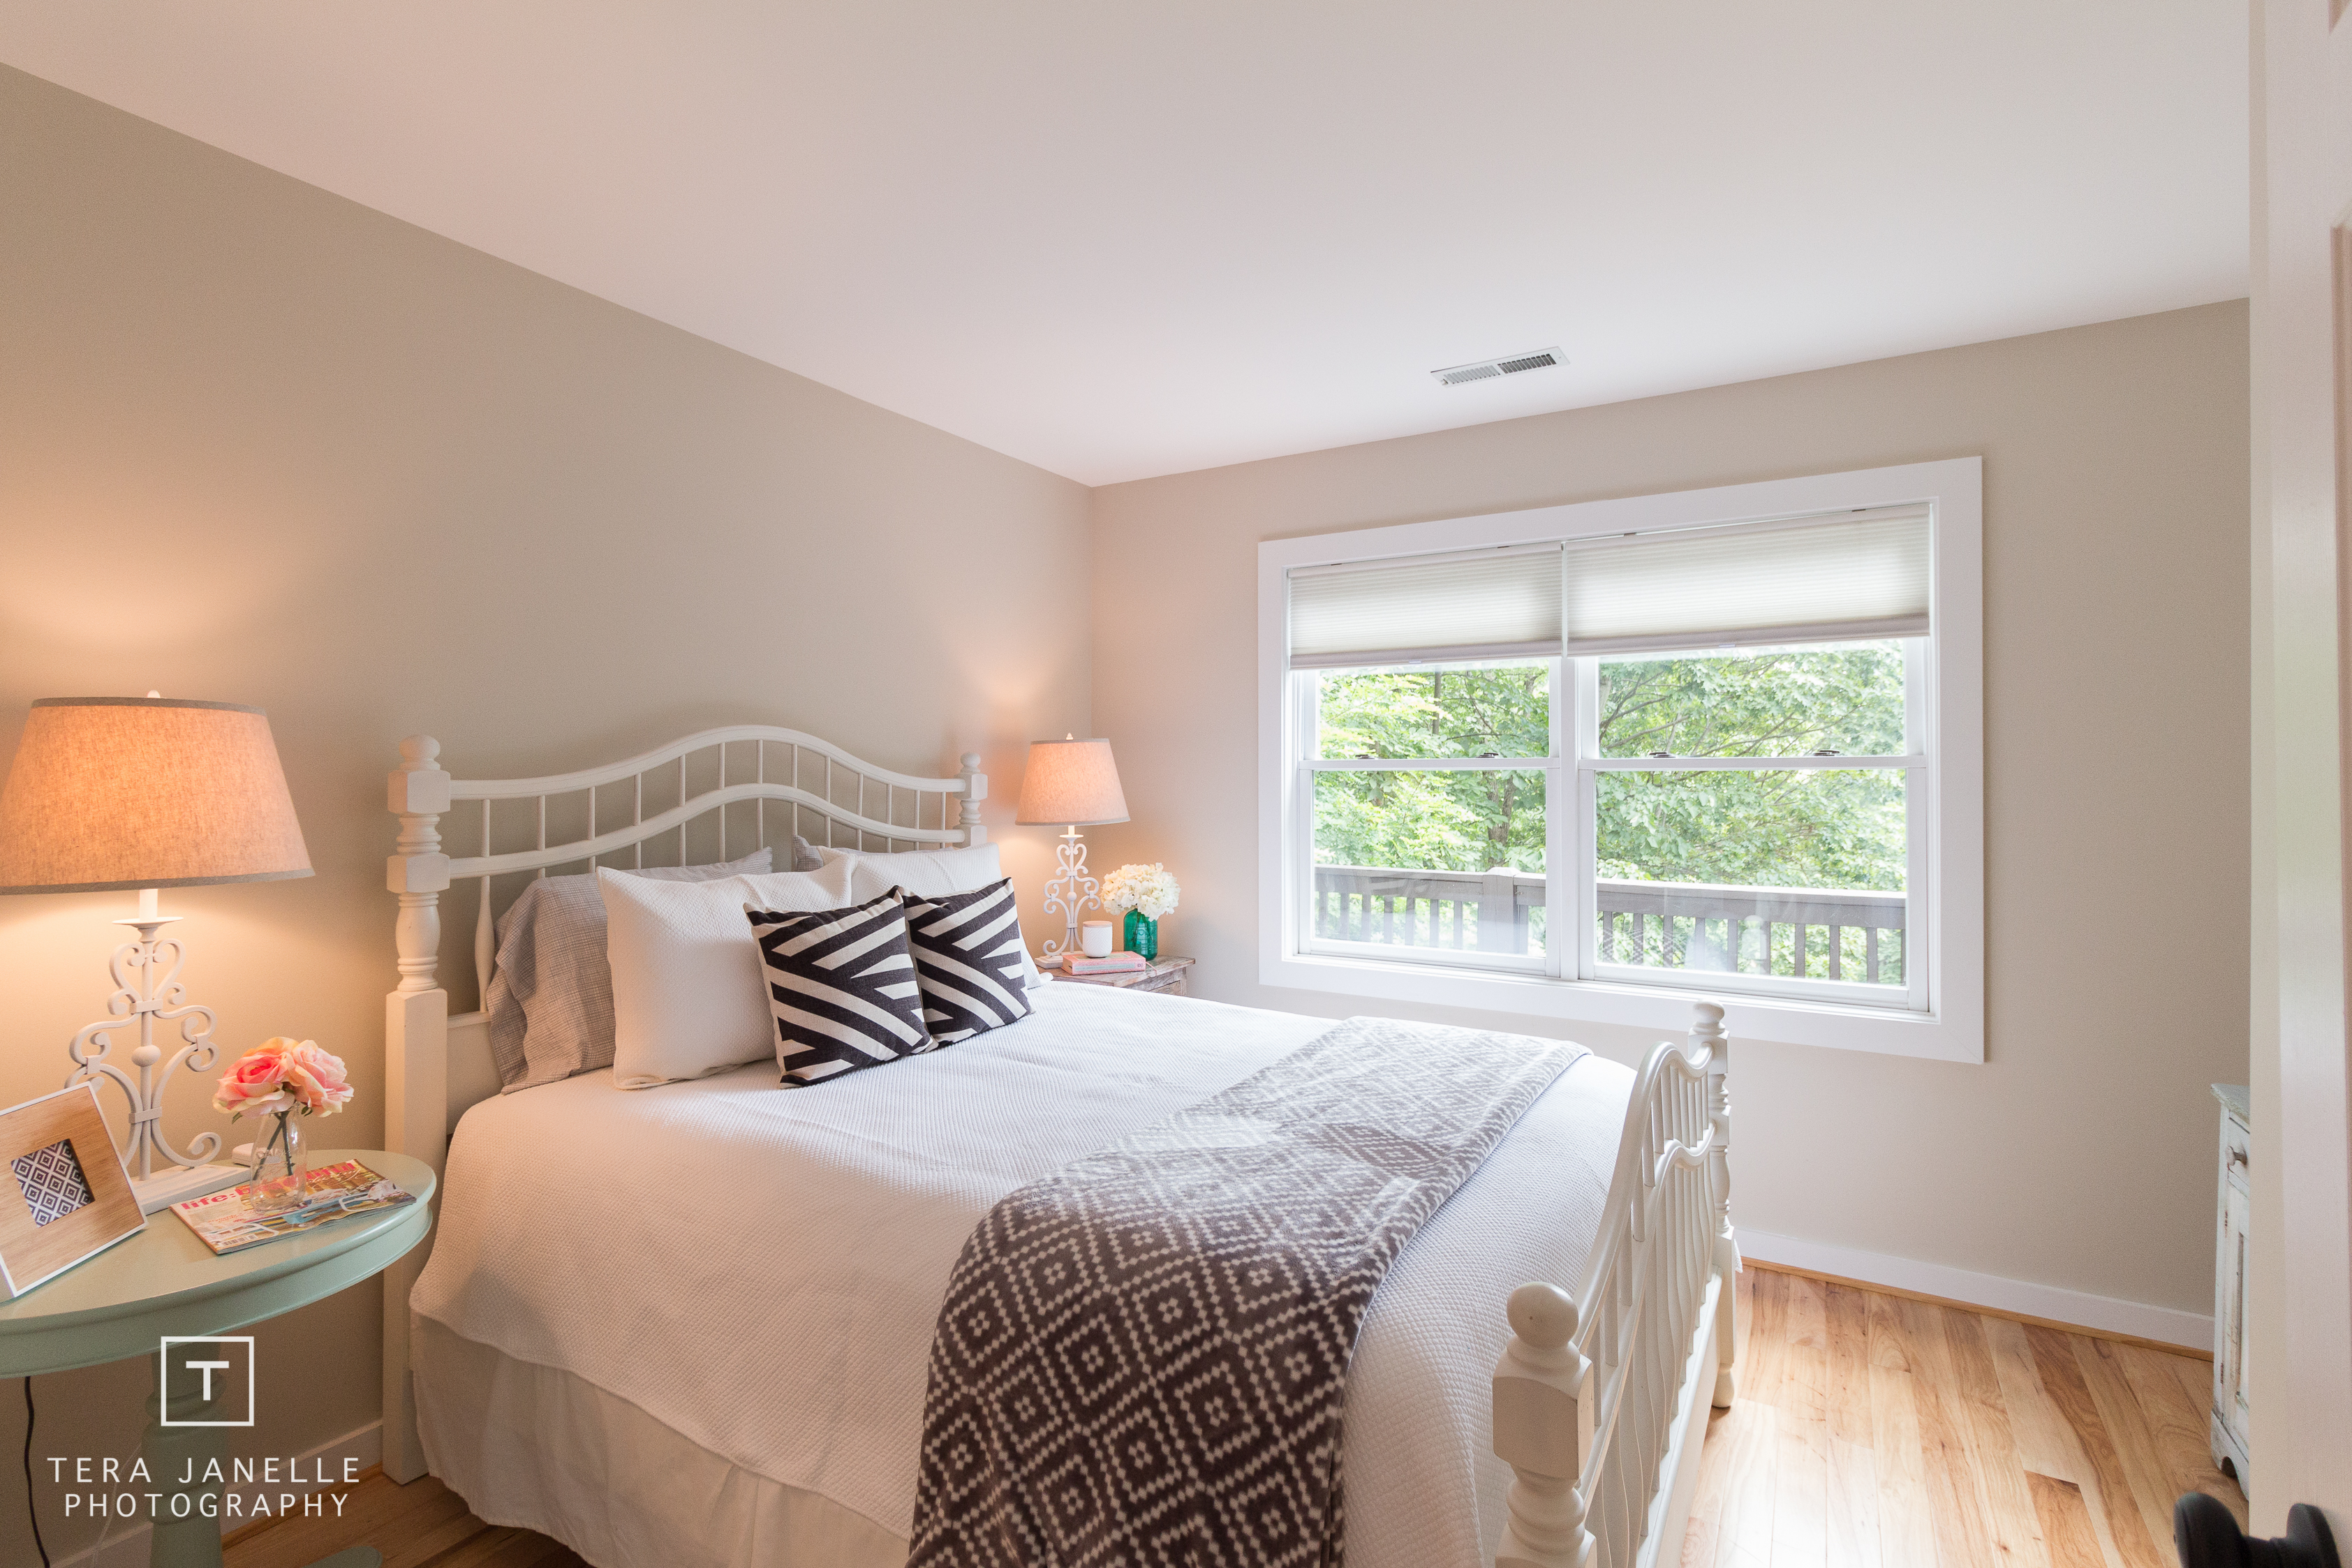 Tera Janelle Real Estate Photography - Lynchburg Virginia